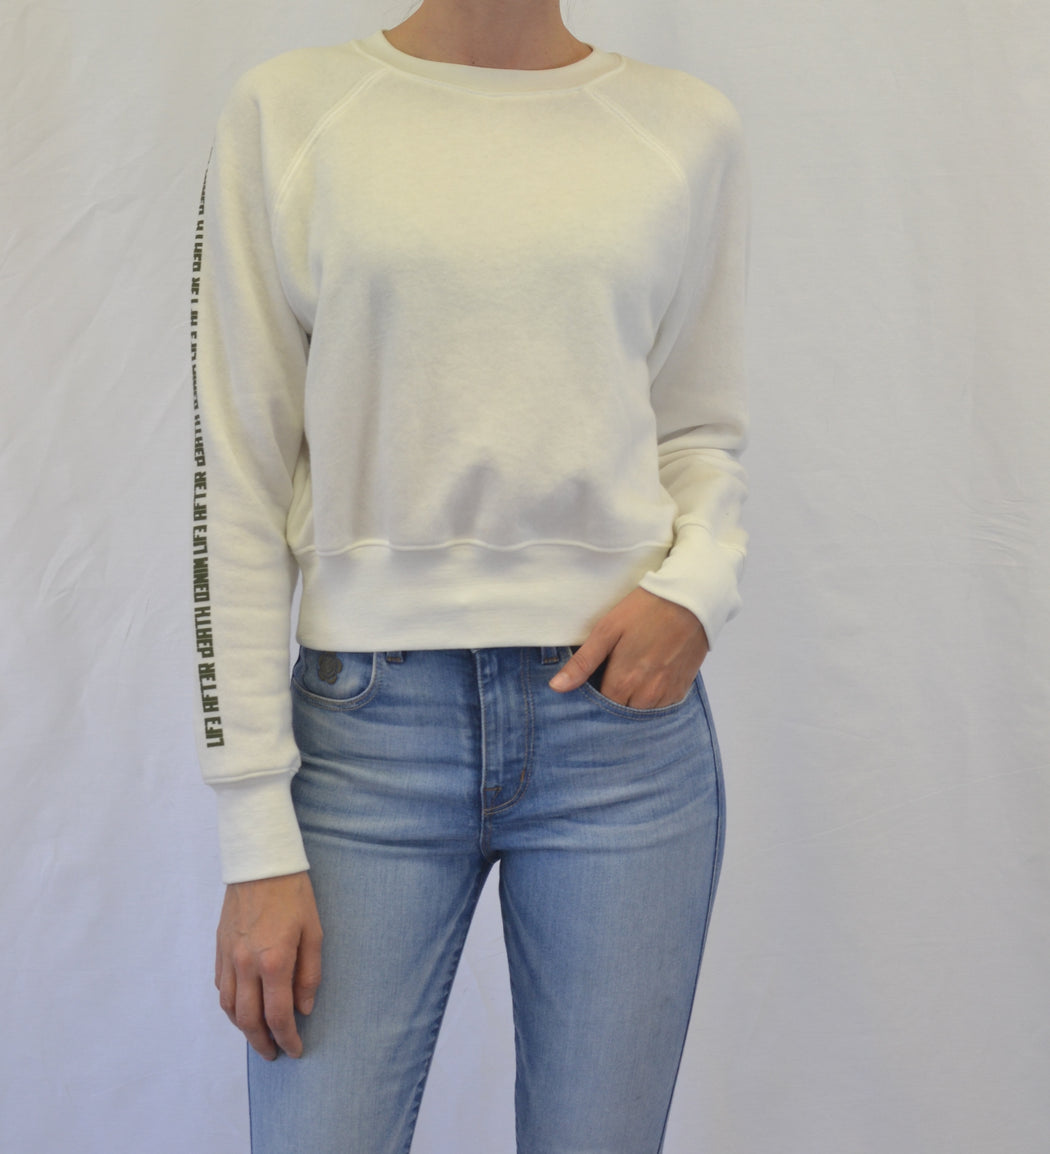 Cropped Raglan Fleece Sweatshirt - White - Organic Cotton / Recycled Polyester